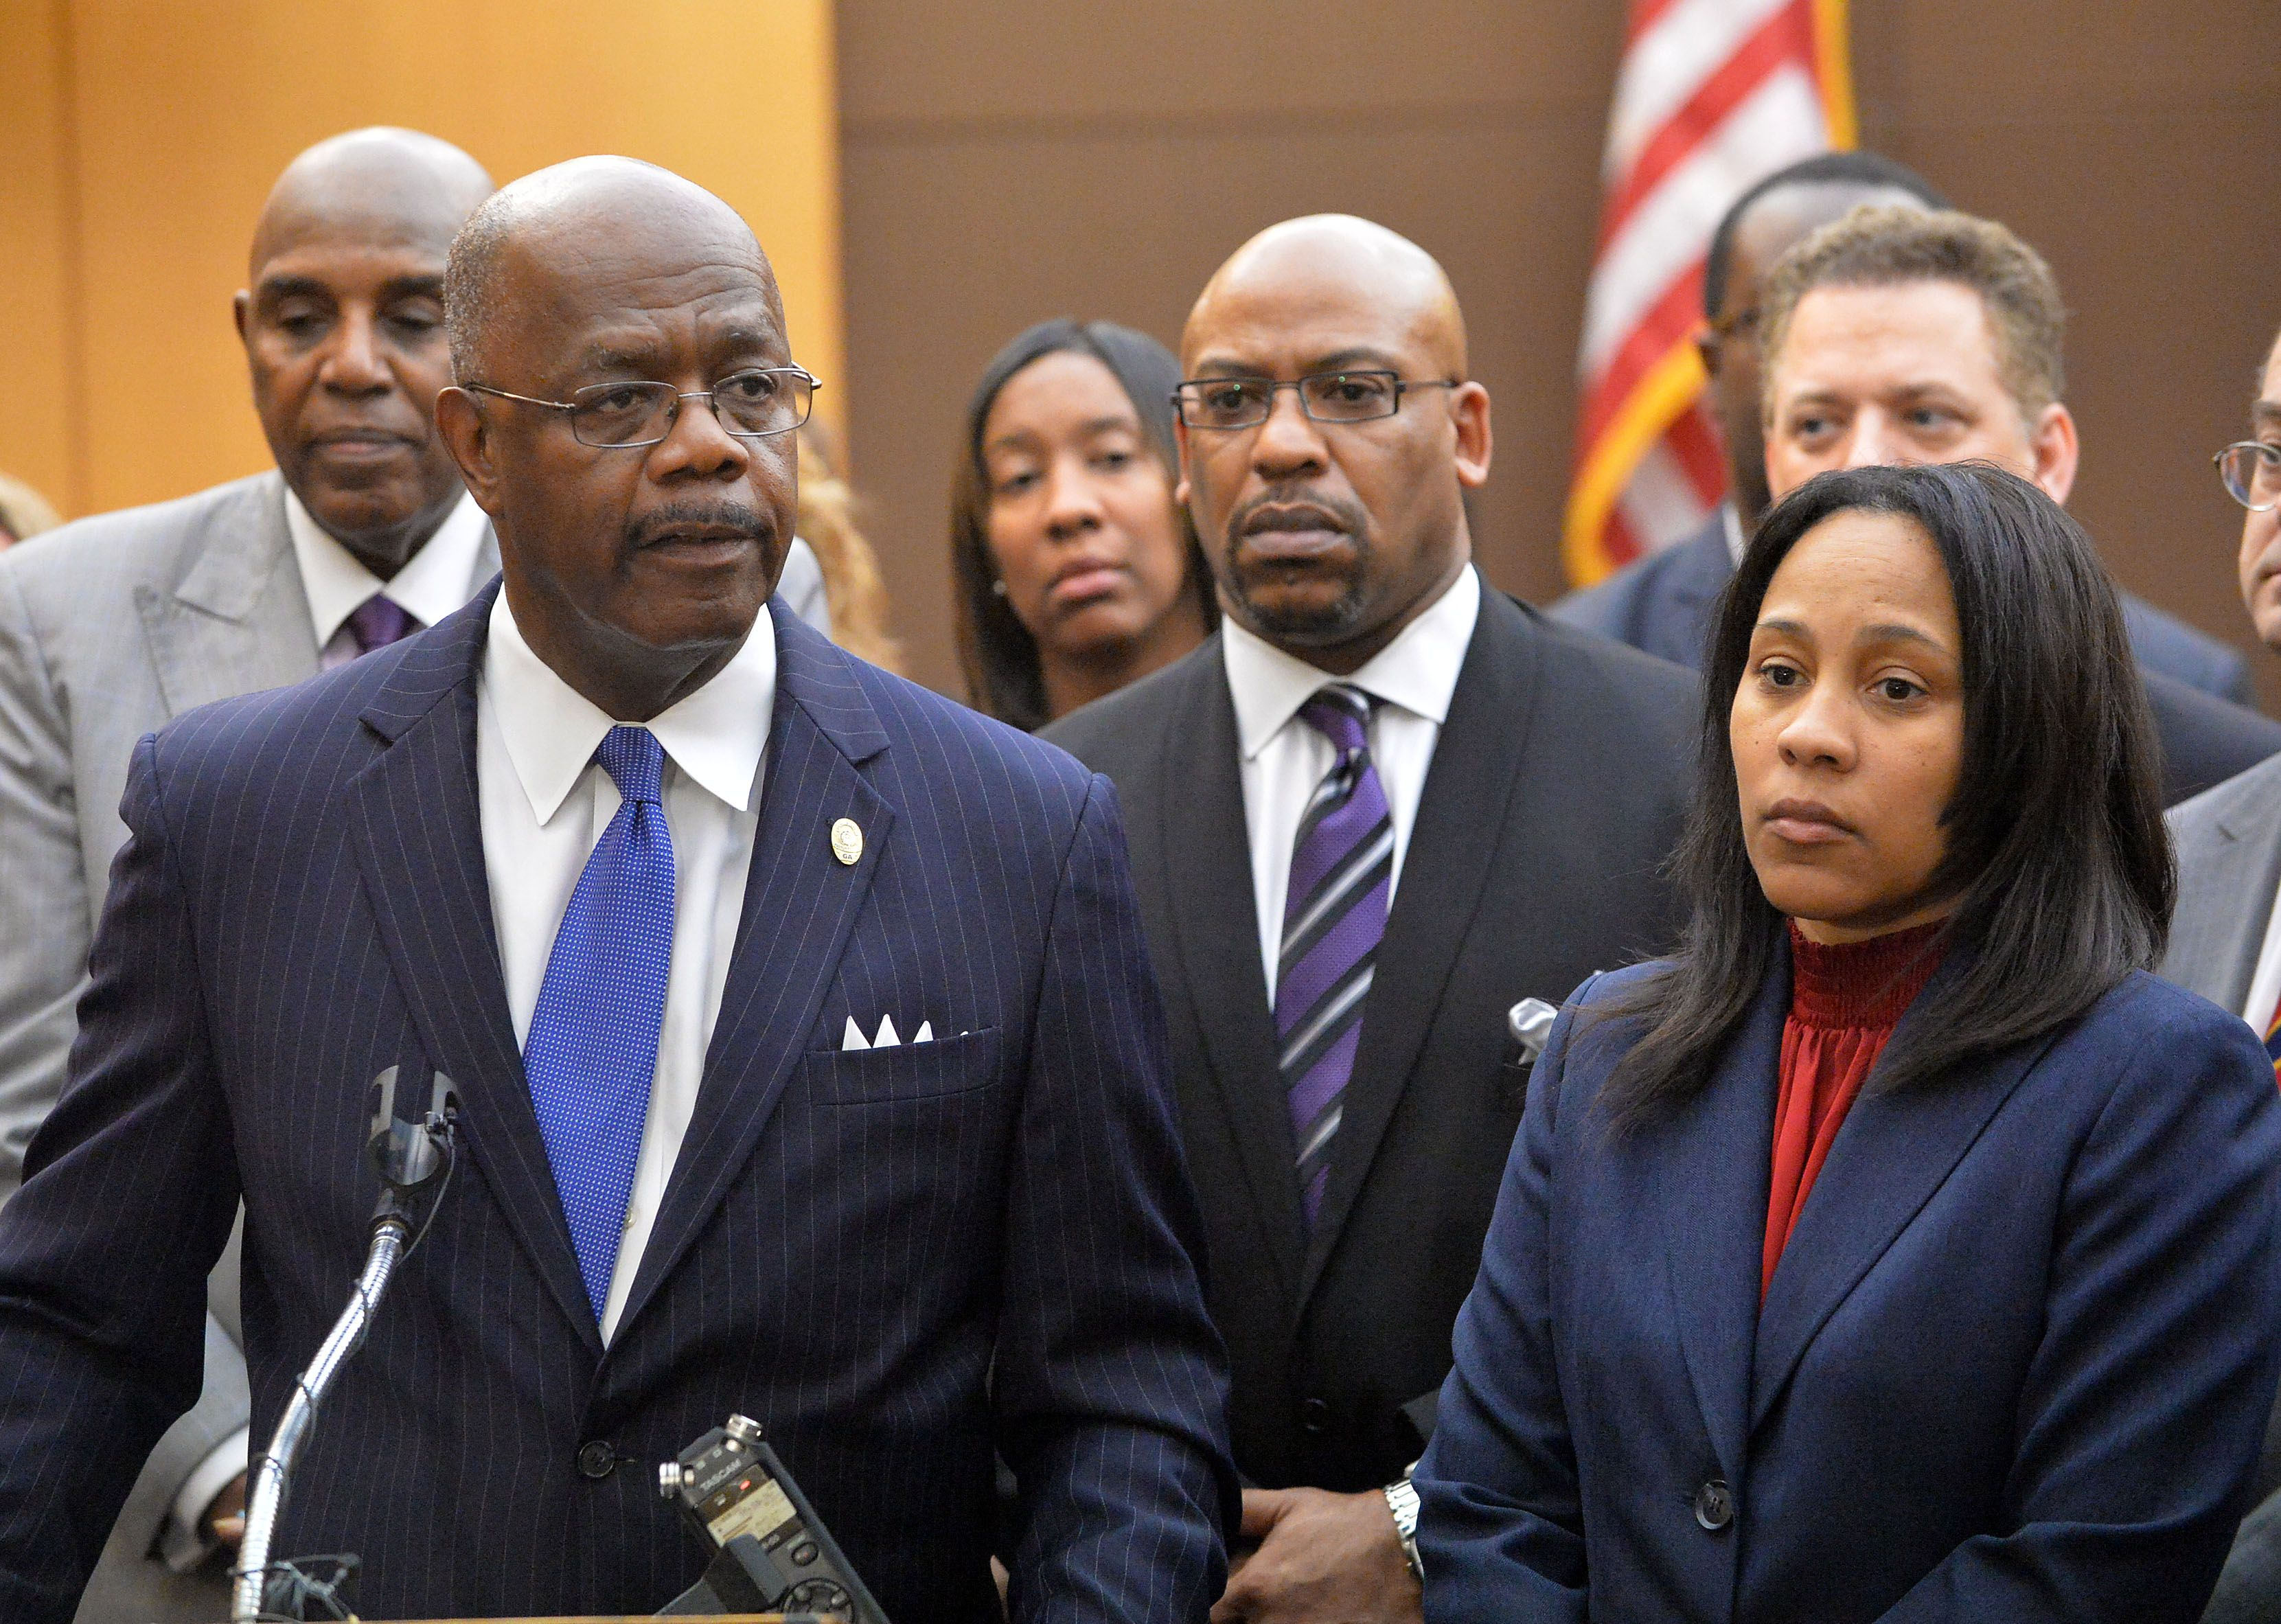 Fulton County District Attorney Paul Howard speaks during a press  conference in the courtroom following the